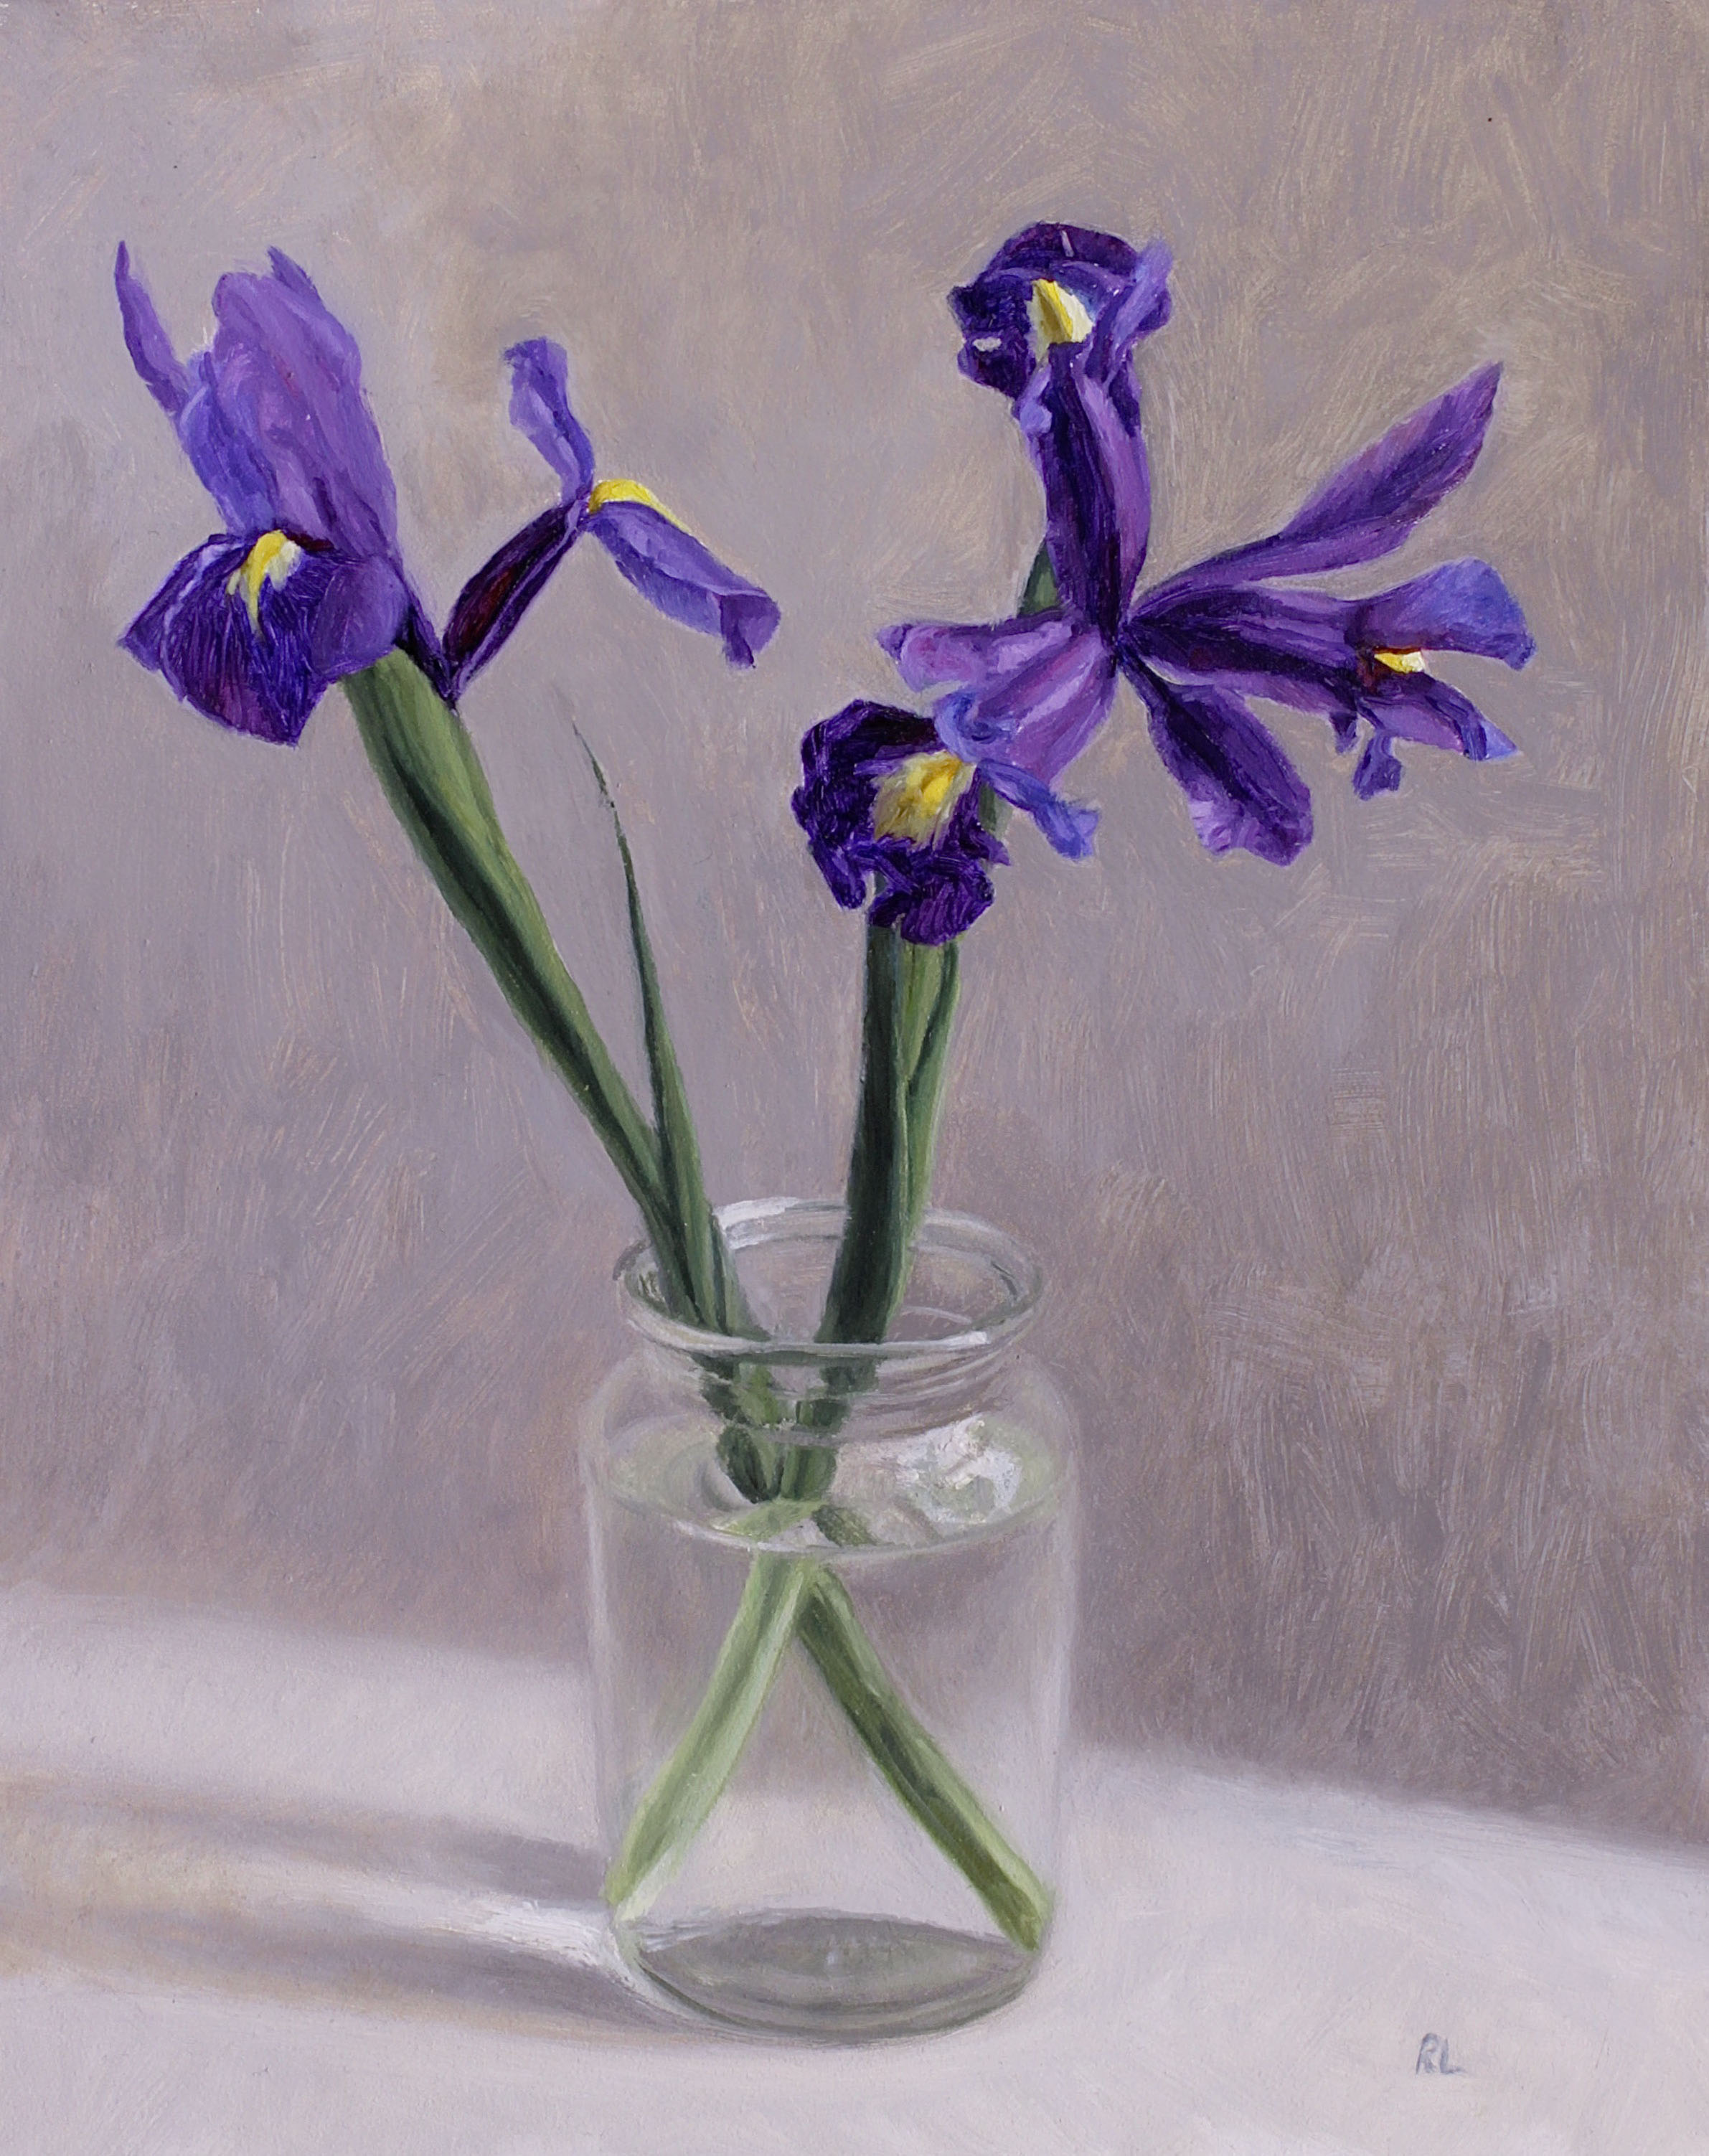 Purple Irises in a Glass Jar